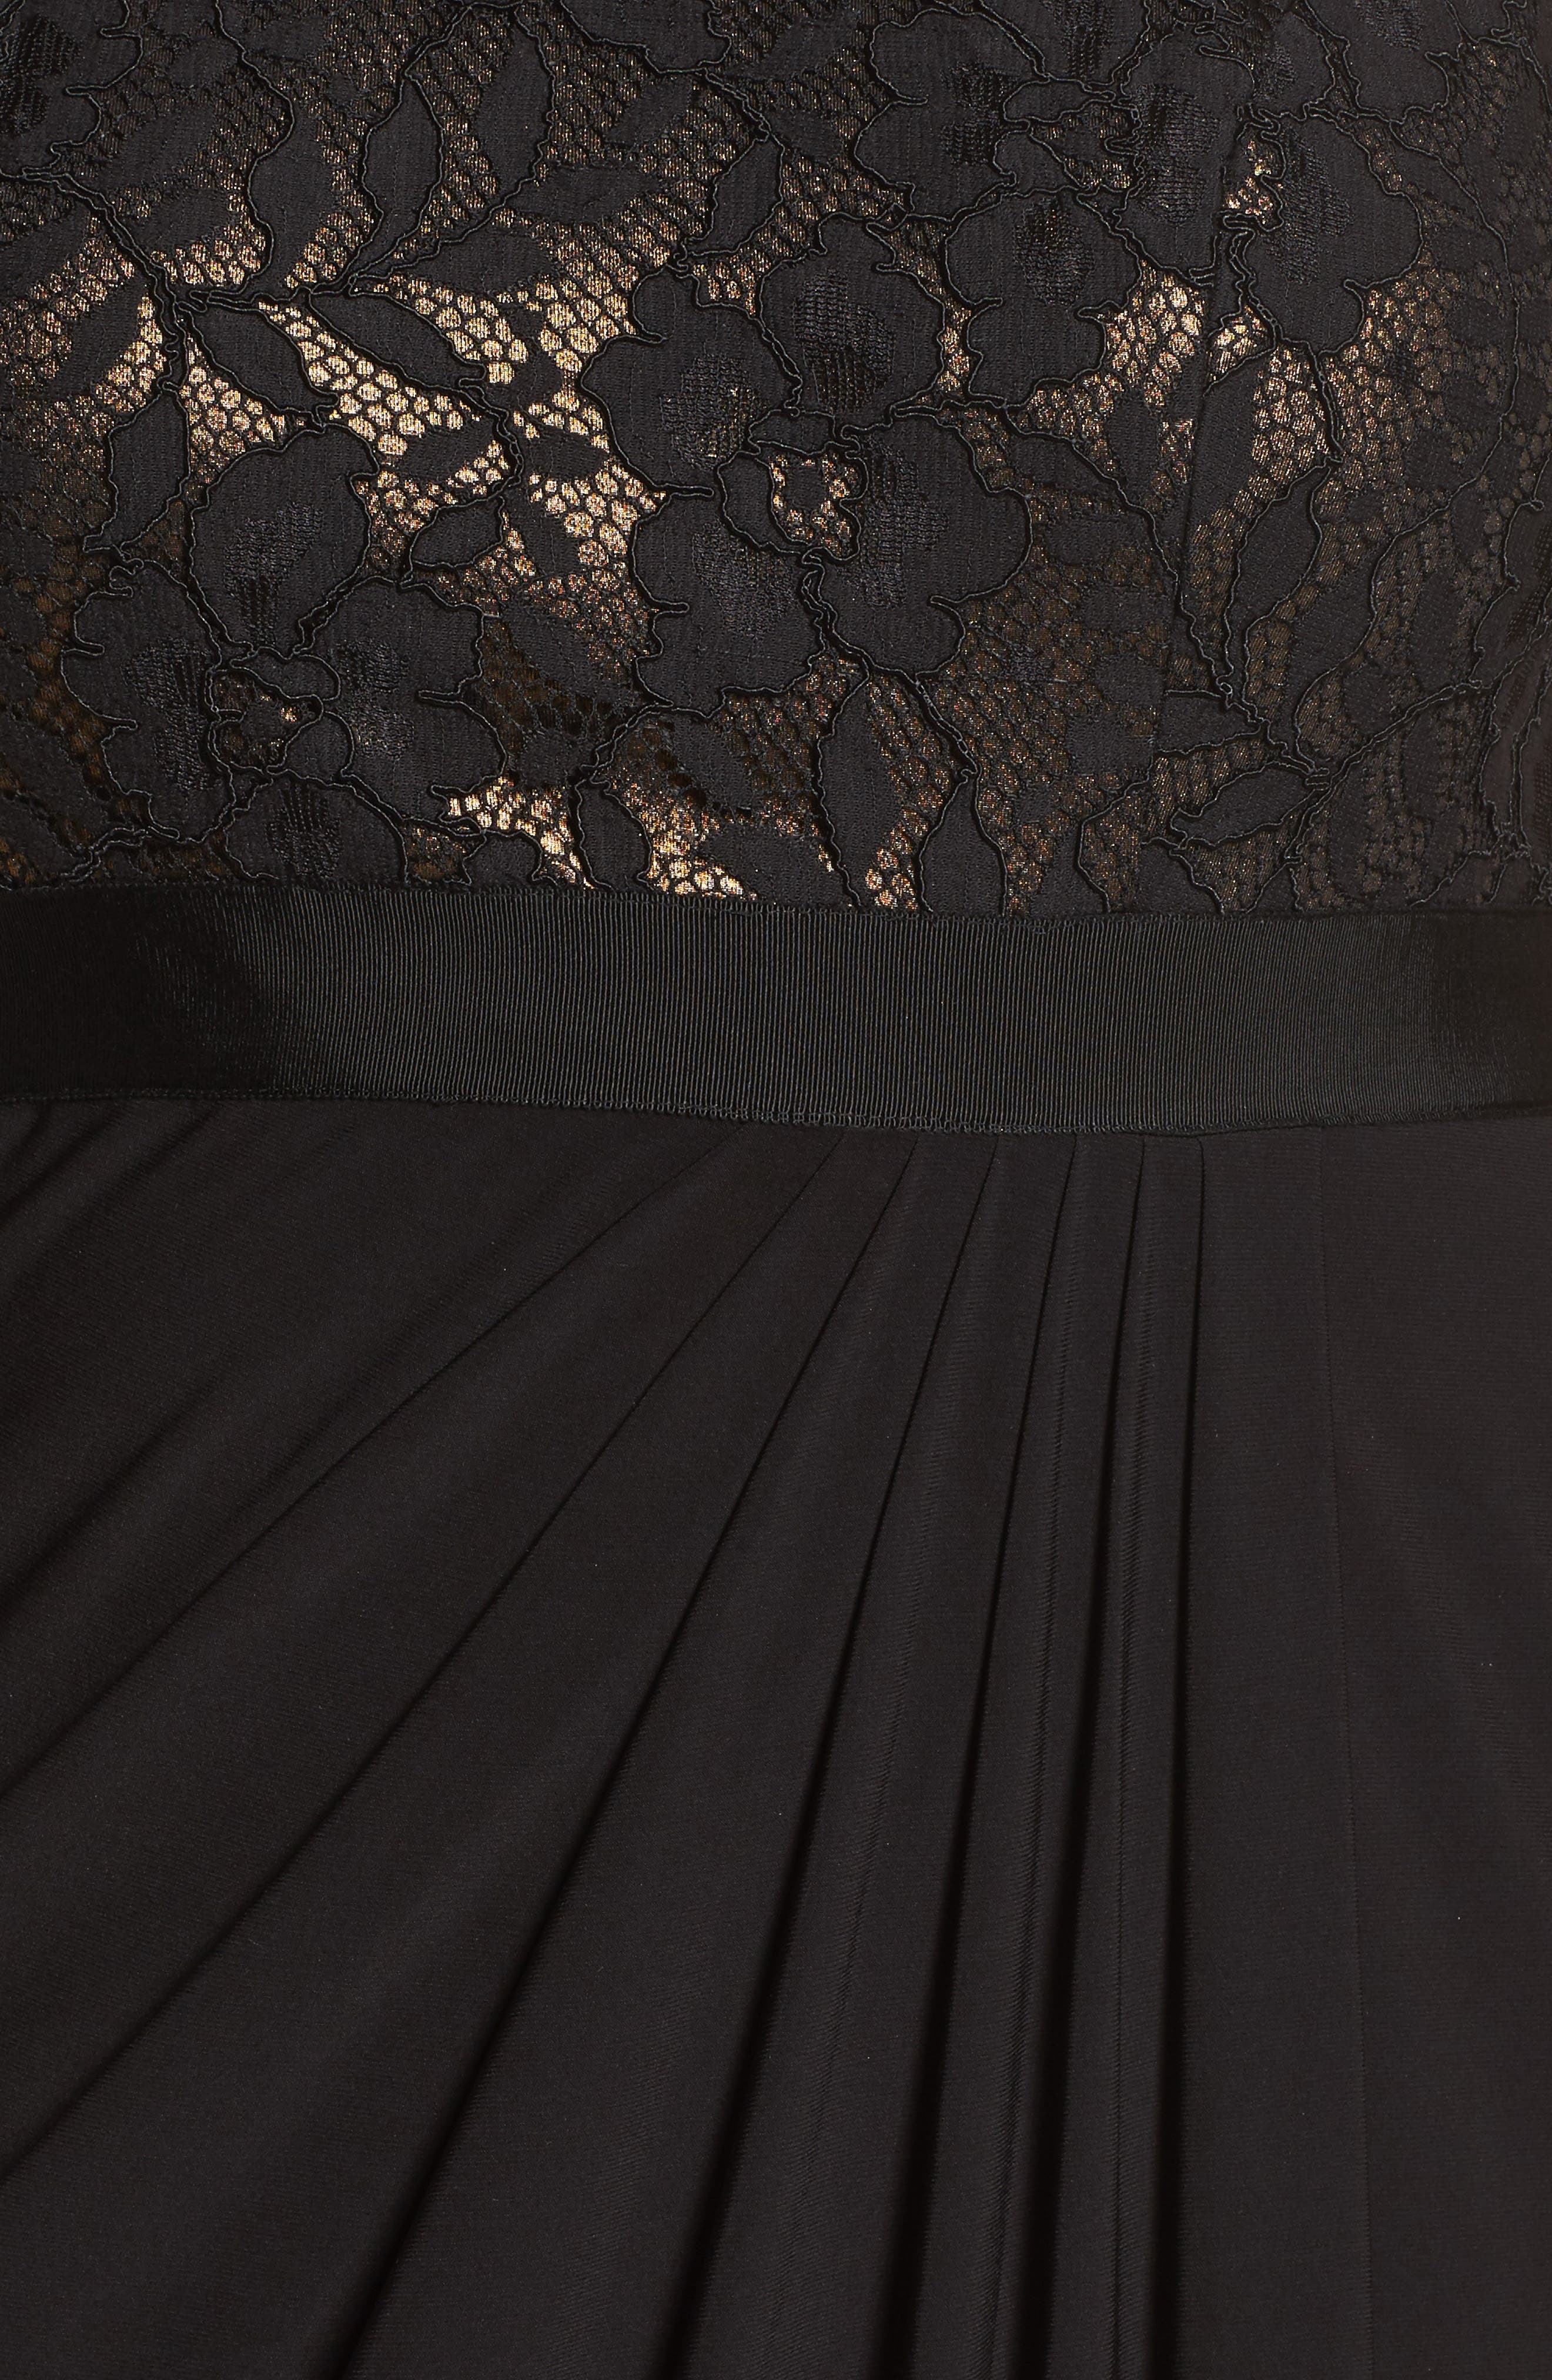 Metallic Lined Lace & Chiffon One-Shoulder Gown,                             Alternate thumbnail 5, color,                             Black/ Copper